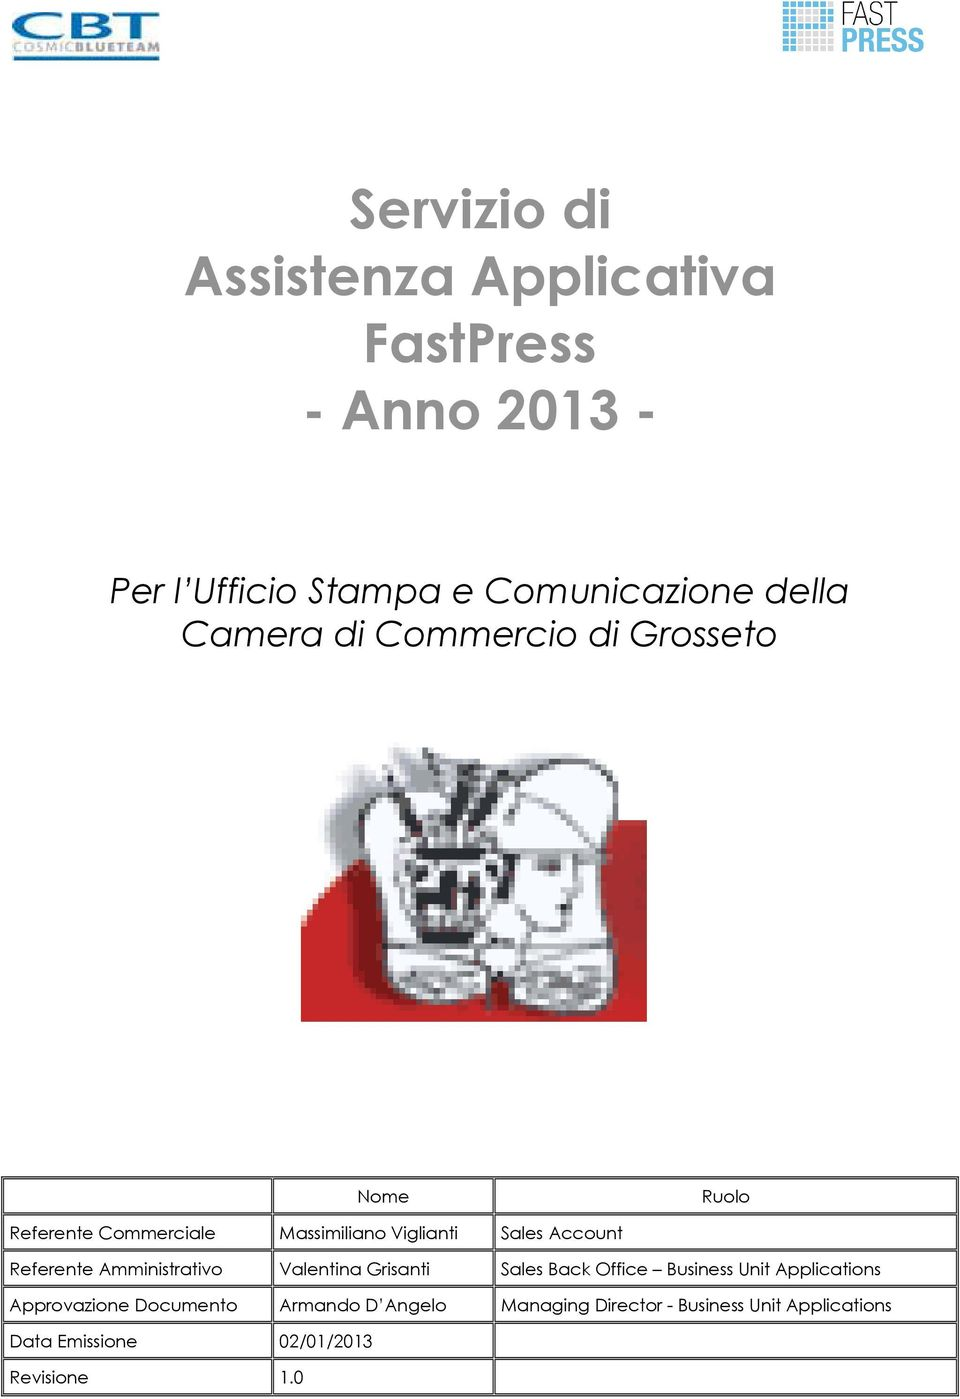 Referente Amministrativo Valentina Grisanti Sales Back Office Business Unit Applications Approvazione